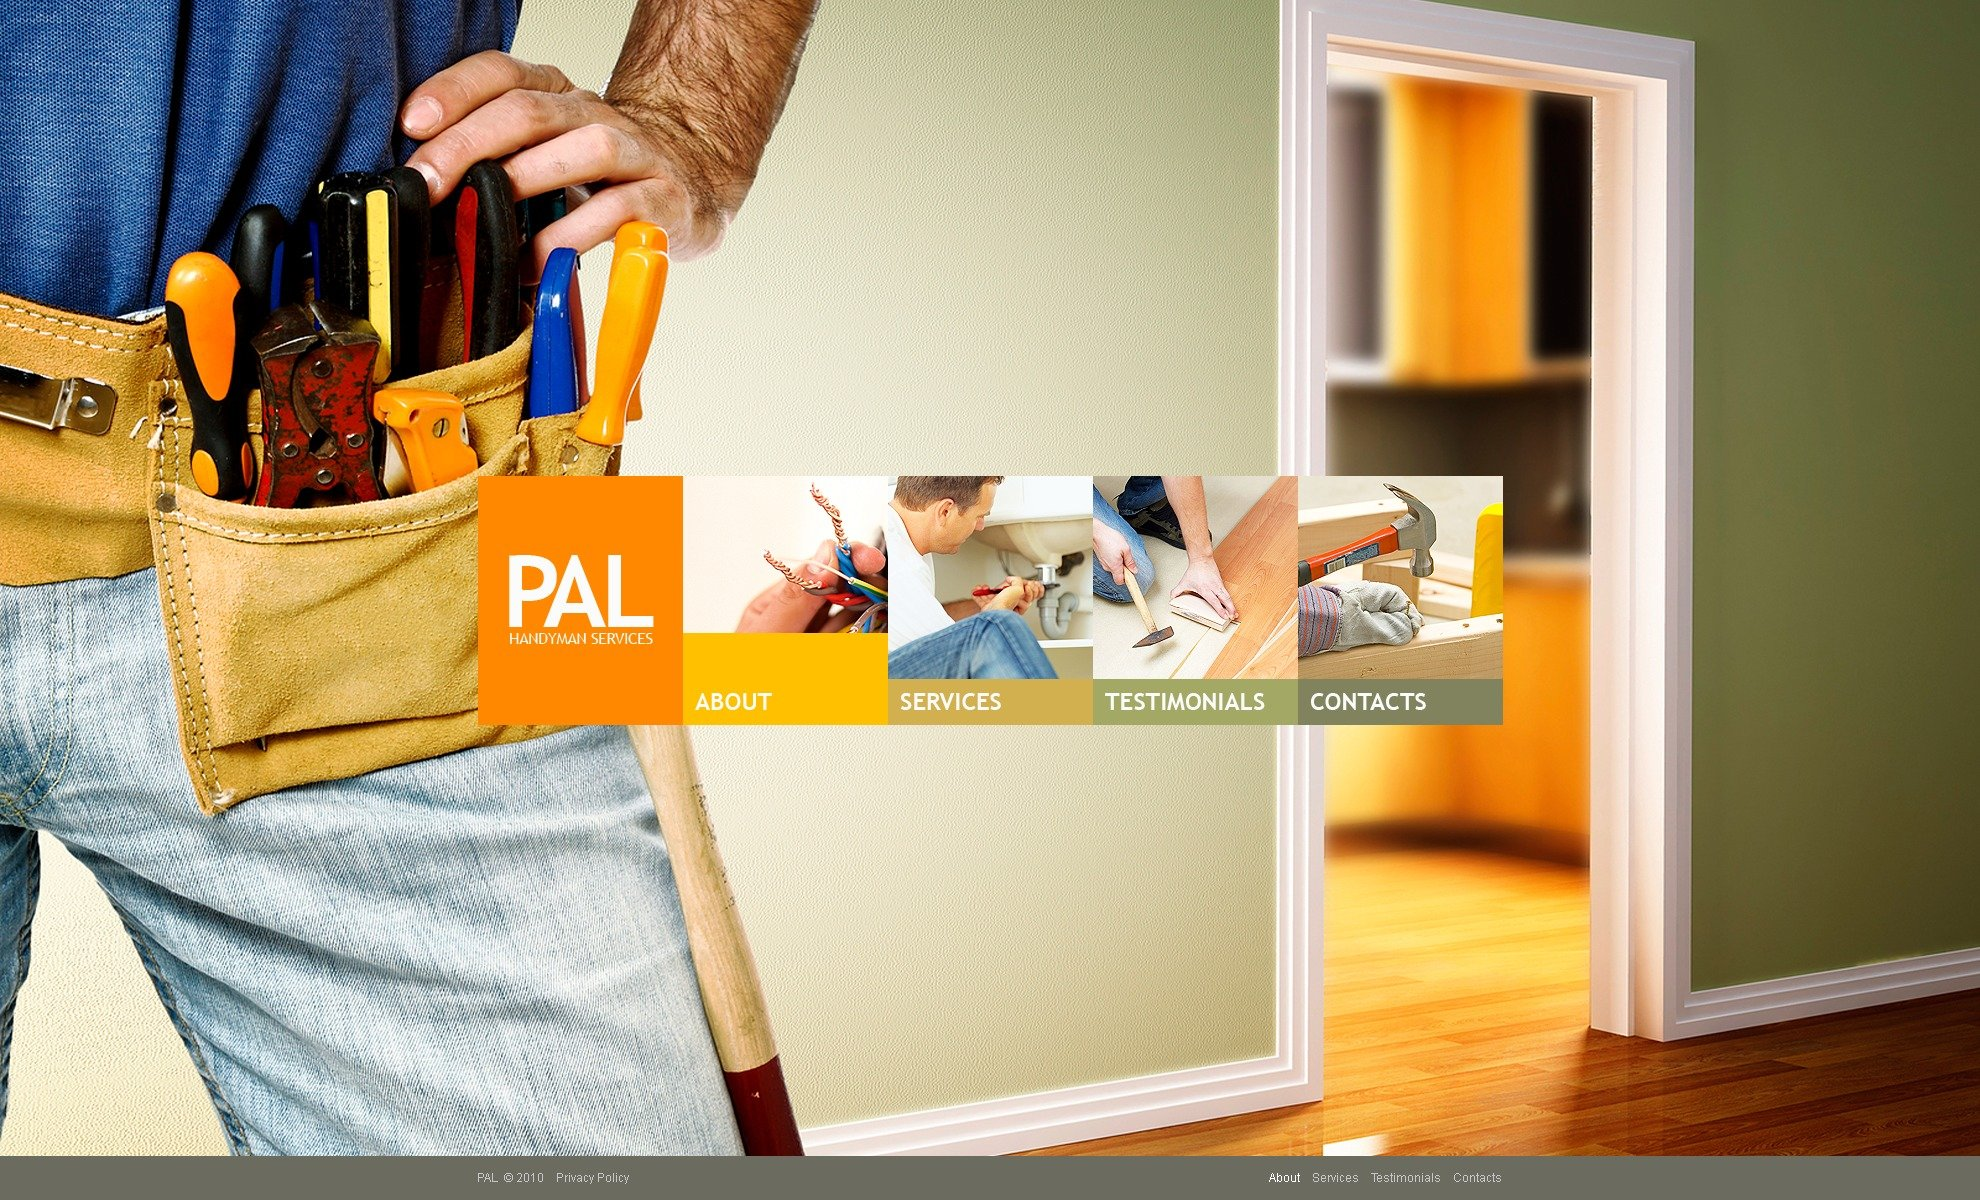 The Pal Handyman PSD Design 54357, one of the best PSD templates of its kind (most popular, wide, maintenance services, jquery), also known as pal handyman PSD template, services PSD template, home master PSD template, craftsman PSD template, skilled workman PSD template, repair PSD template, reparing PSD template, tools PSD template, paint PSD template, instruments and related with pal handyman, services, home master, craftsman, skilled workman, repair, reparing, tools, paint, instruments, etc.